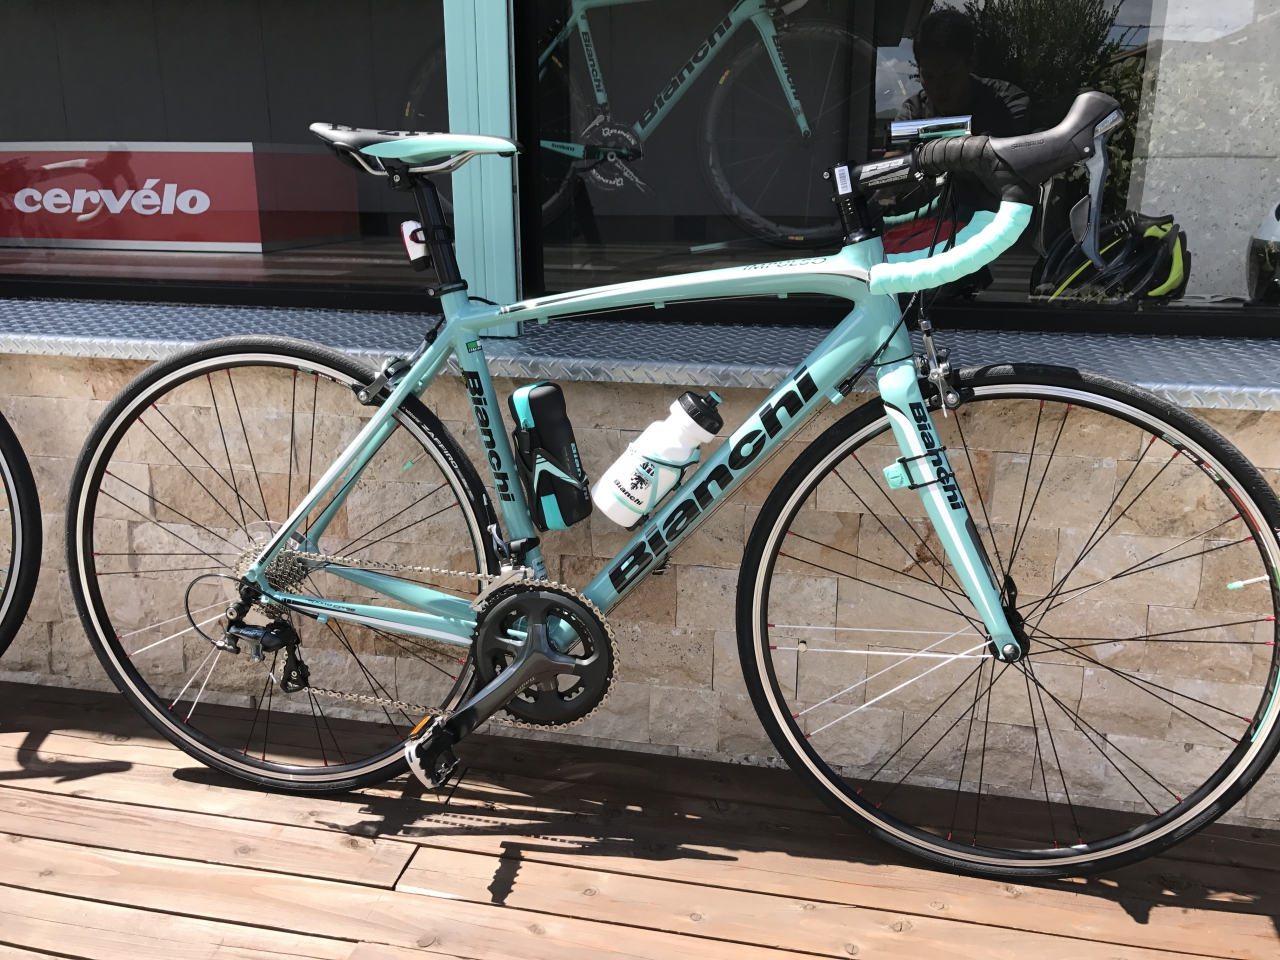 Bianchi IMPLUSO Tiagra 納車しました。From Mさま!